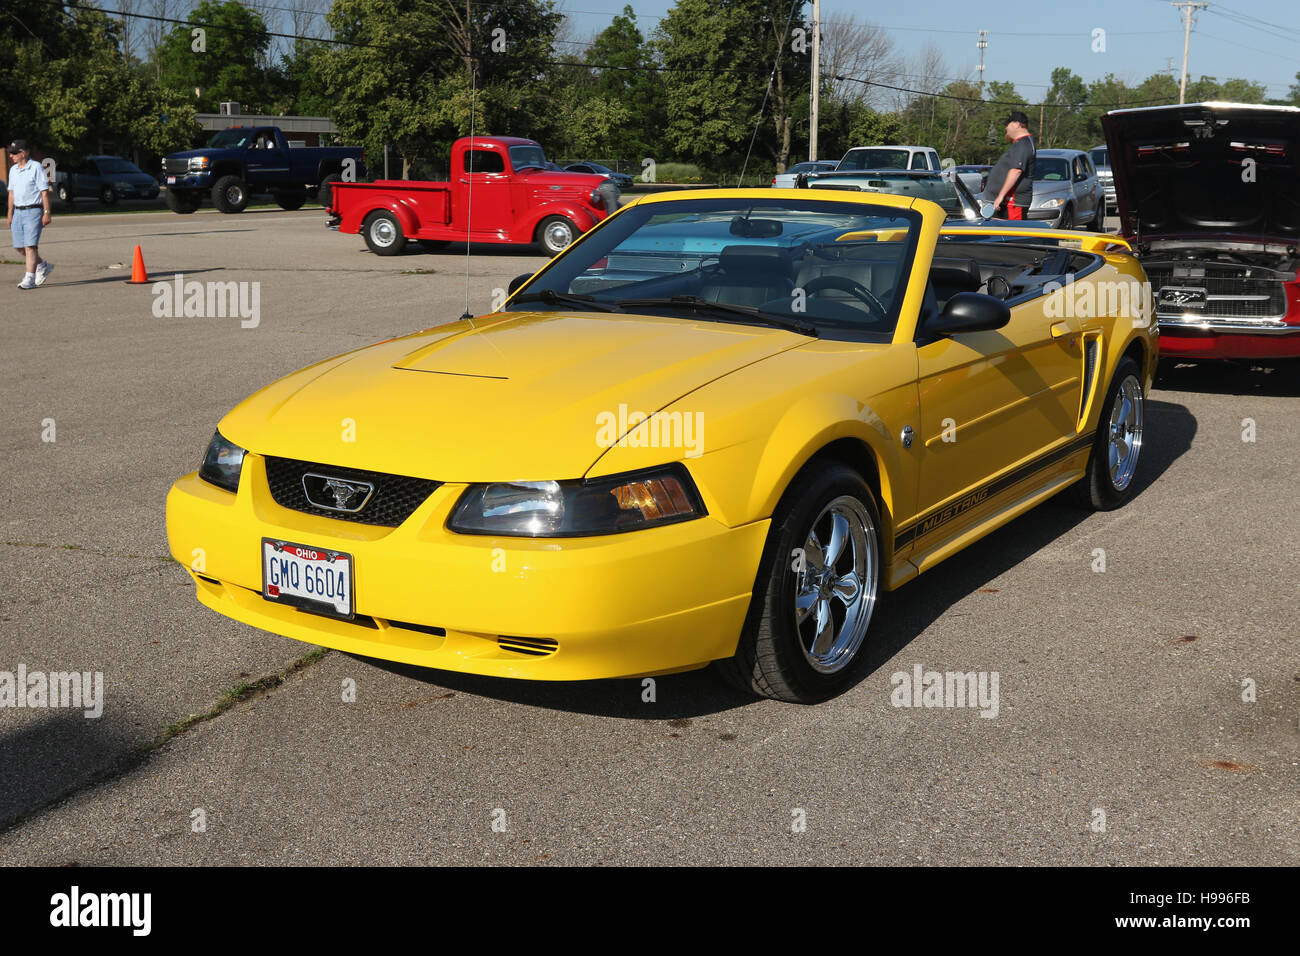 ford mustang convertible car photos ford mustang. Black Bedroom Furniture Sets. Home Design Ideas